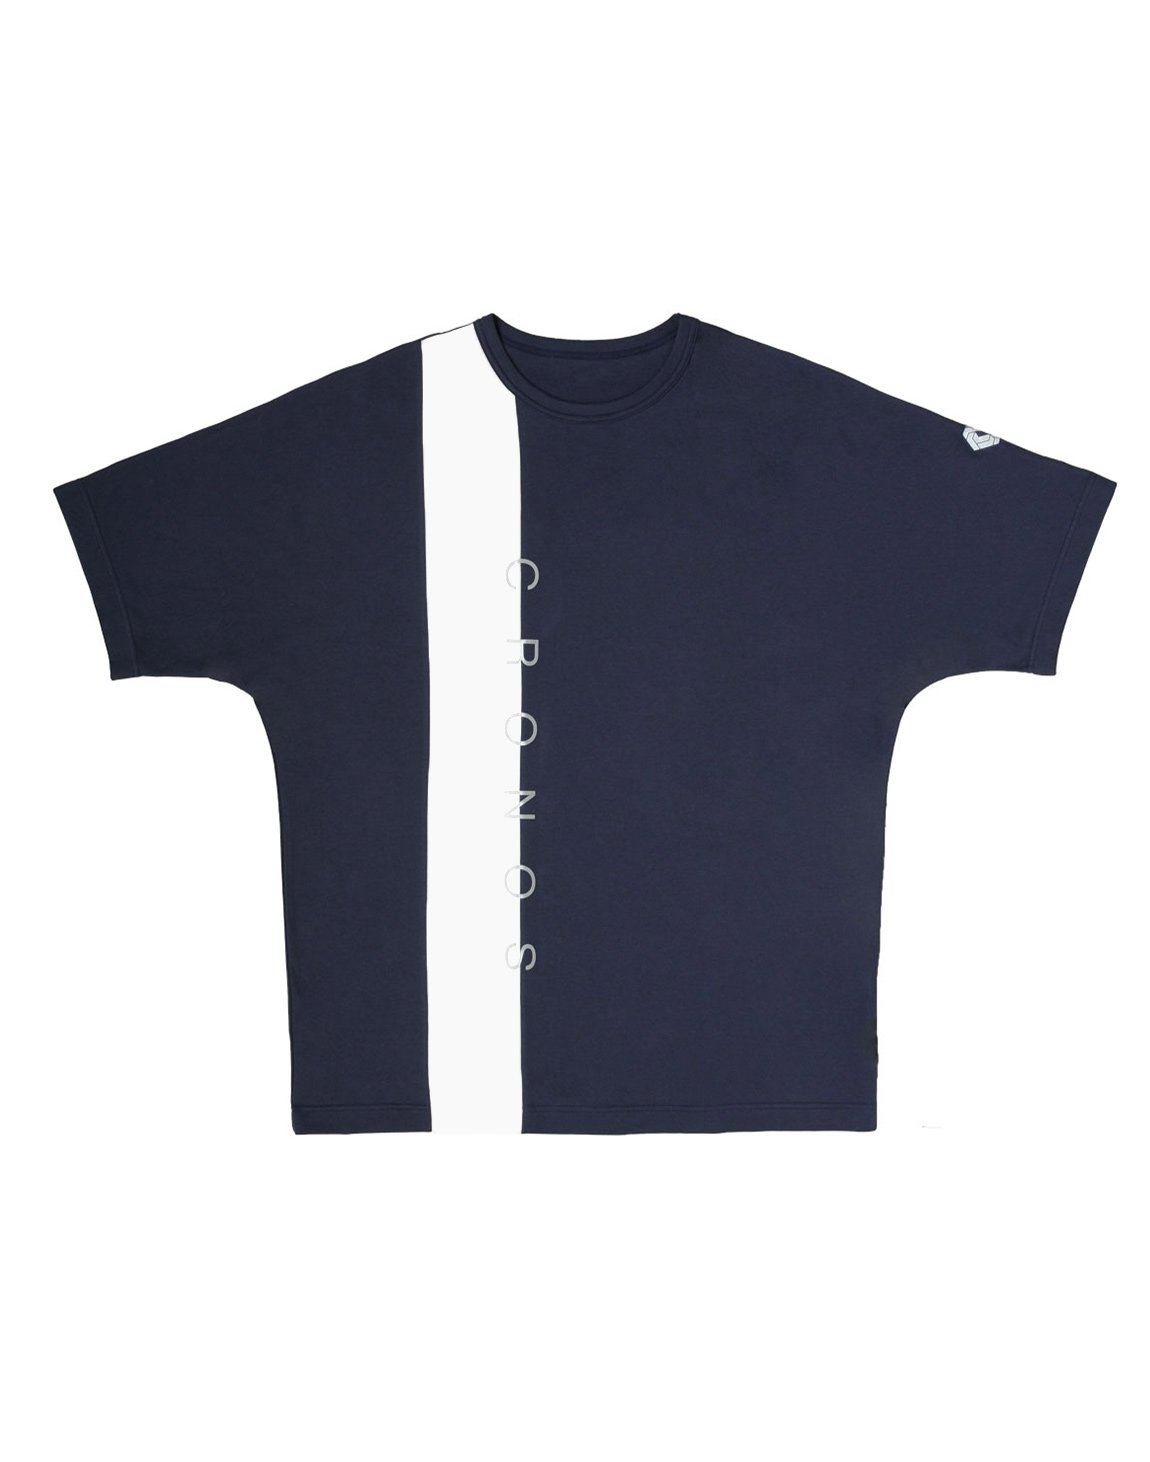 <img class='new_mark_img1' src='https://img.shop-pro.jp/img/new/icons1.gif' style='border:none;display:inline;margin:0px;padding:0px;width:auto;' />CRONOS VERTICAL LINE OVER SIZE T-SHIRTS【NAVY】